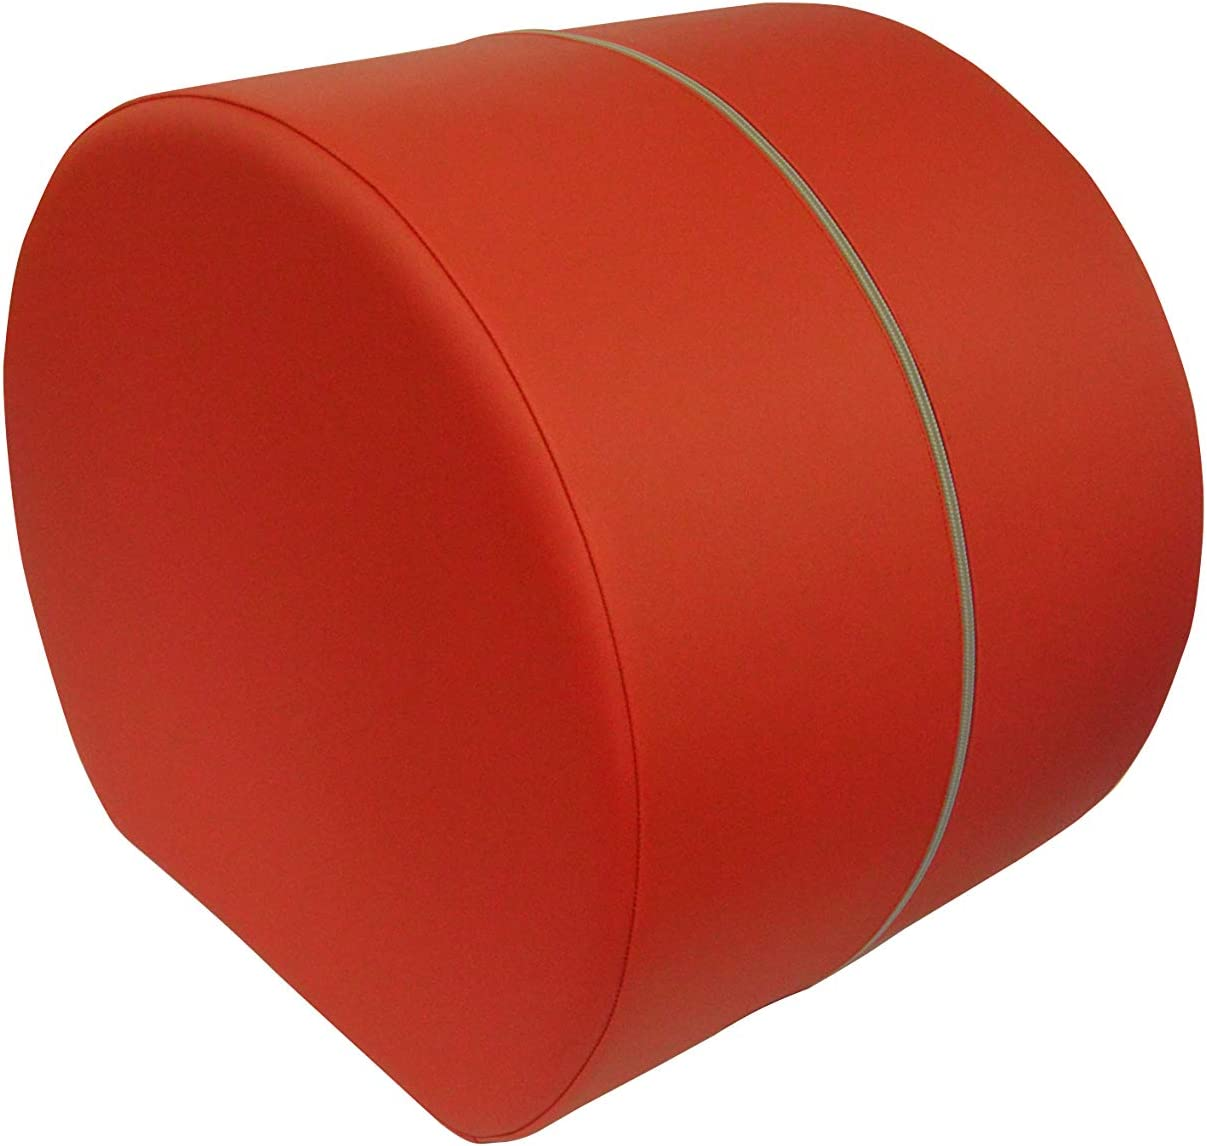 ARTCOBELL Soft Seating Barrel 18X14 Imperial